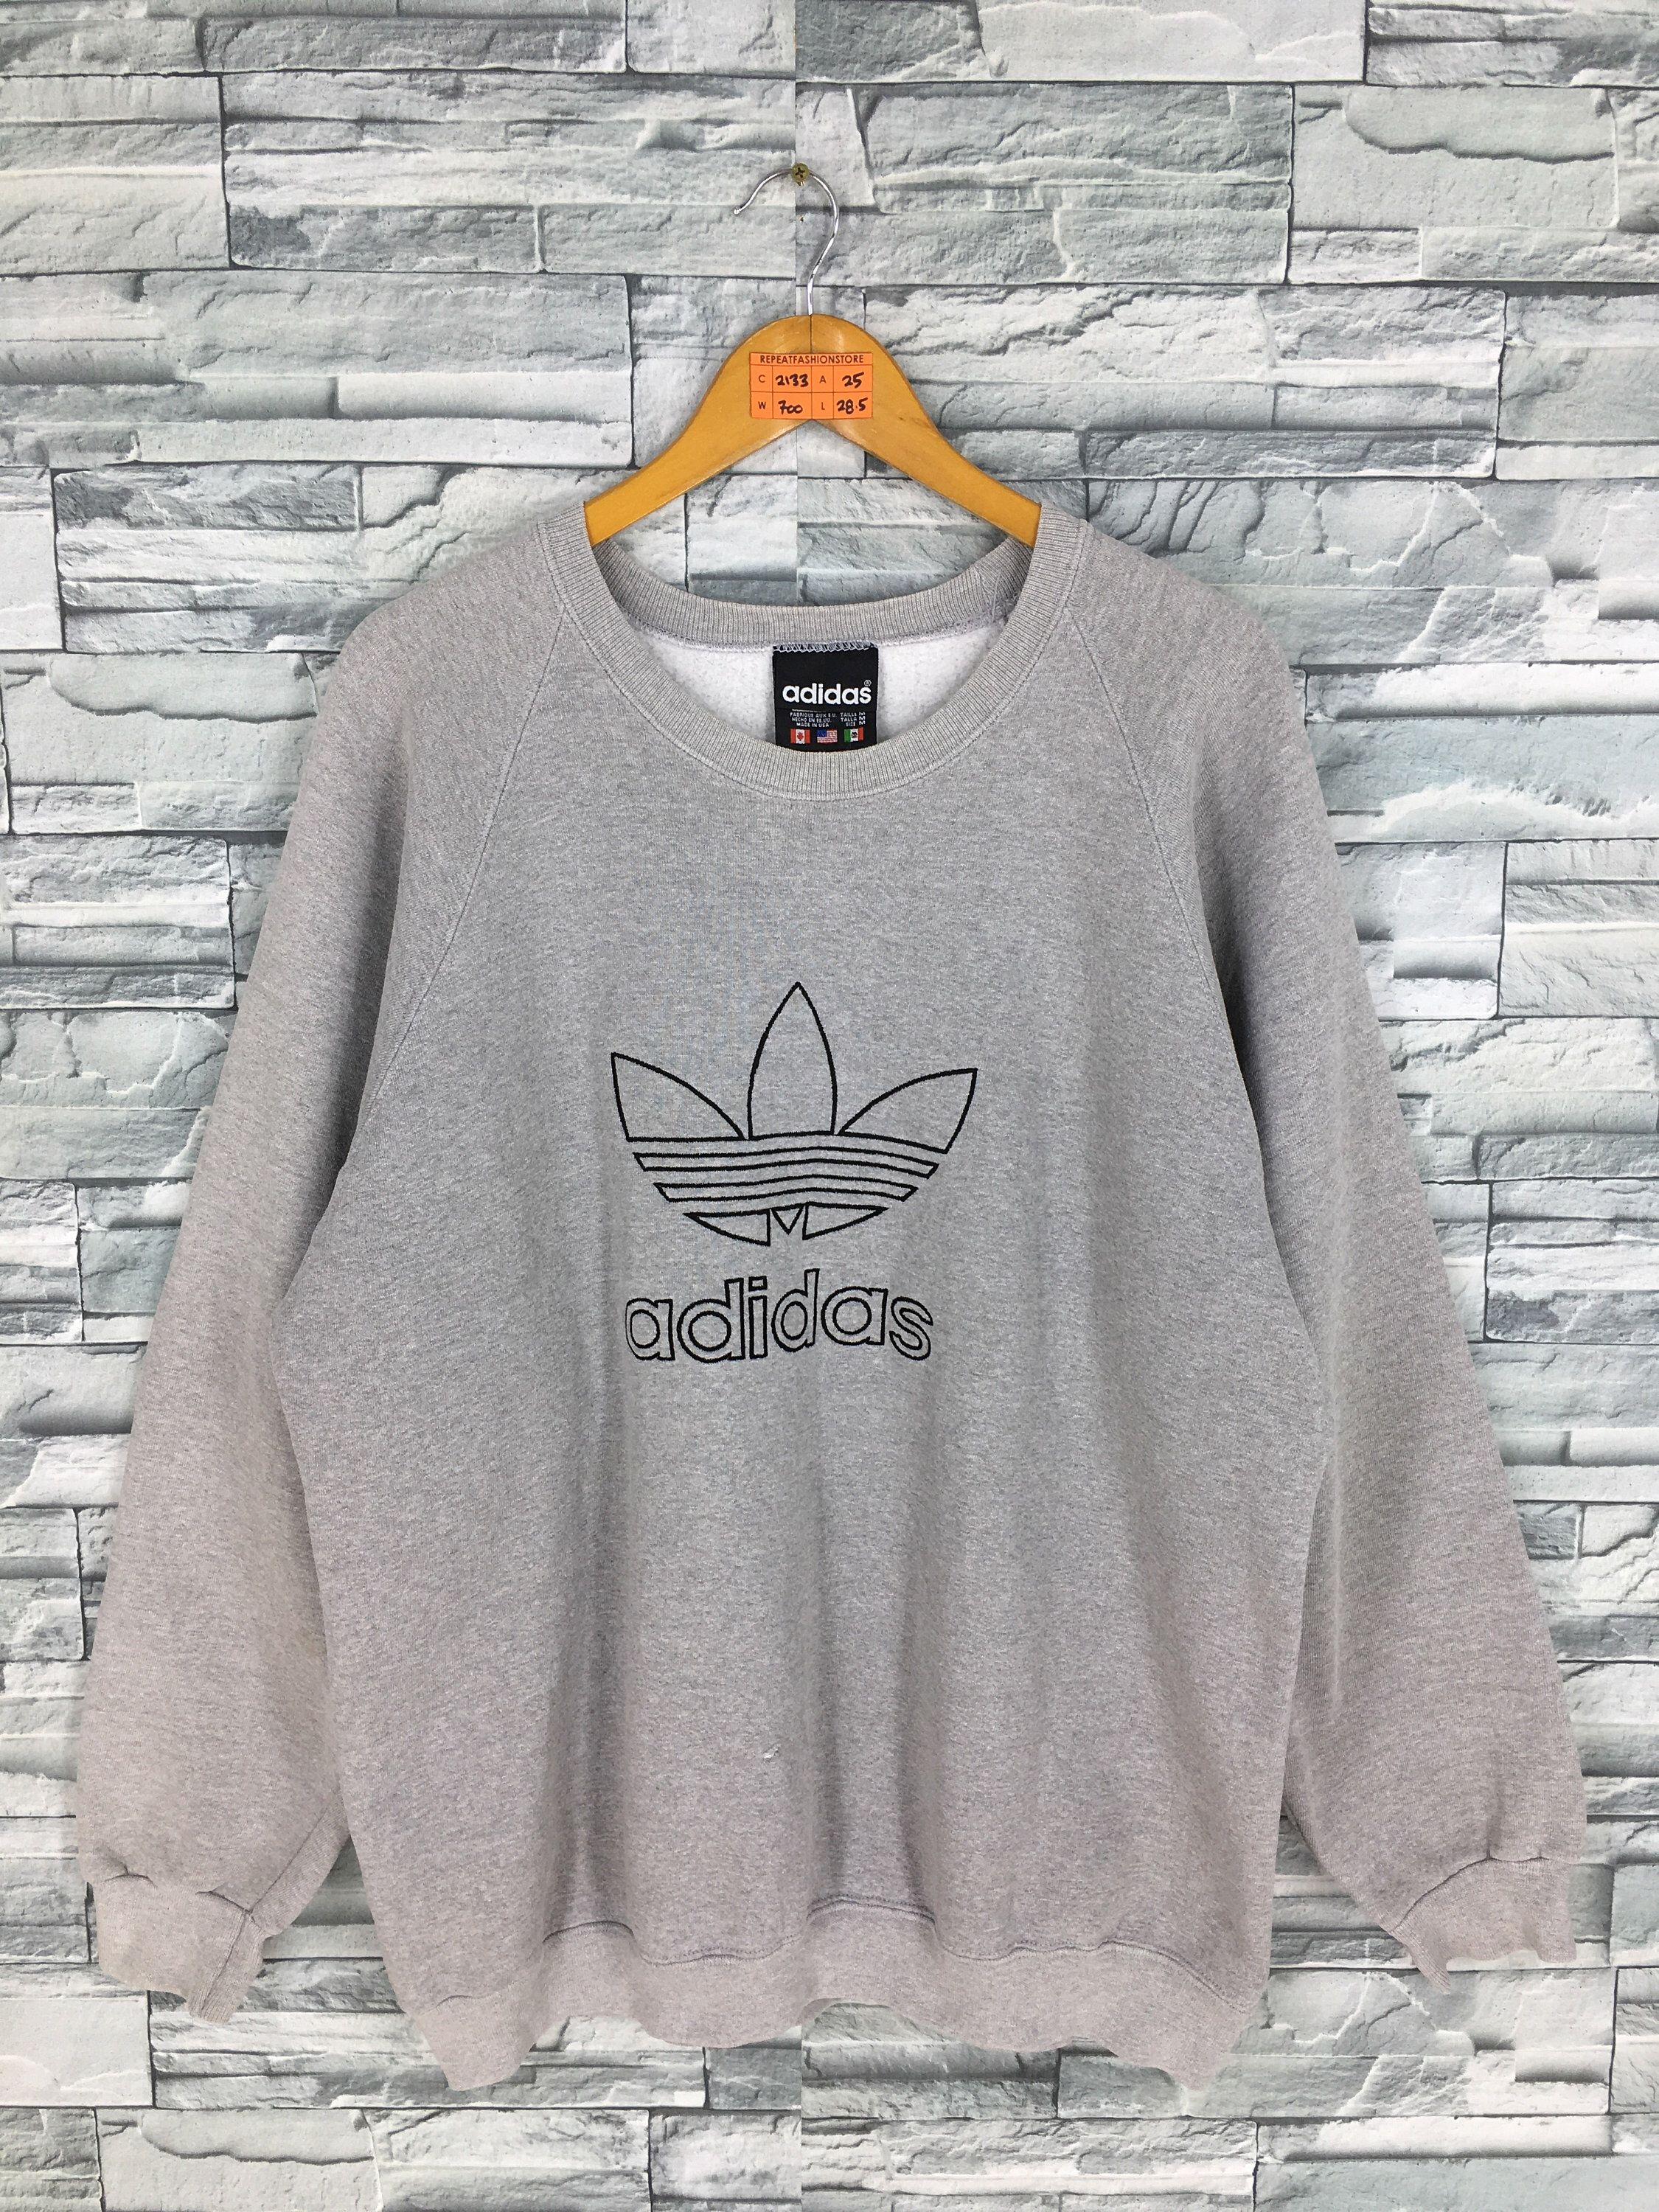 Predownload: Excited To Share This Item From My Etsy Shop Adidas Trefoil Pullover Sweater Medium Vintage 90s Adidas Run Dmc Sportswear Sweatshirt Gray Adidas Casual Big Lo [ 3000 x 2250 Pixel ]